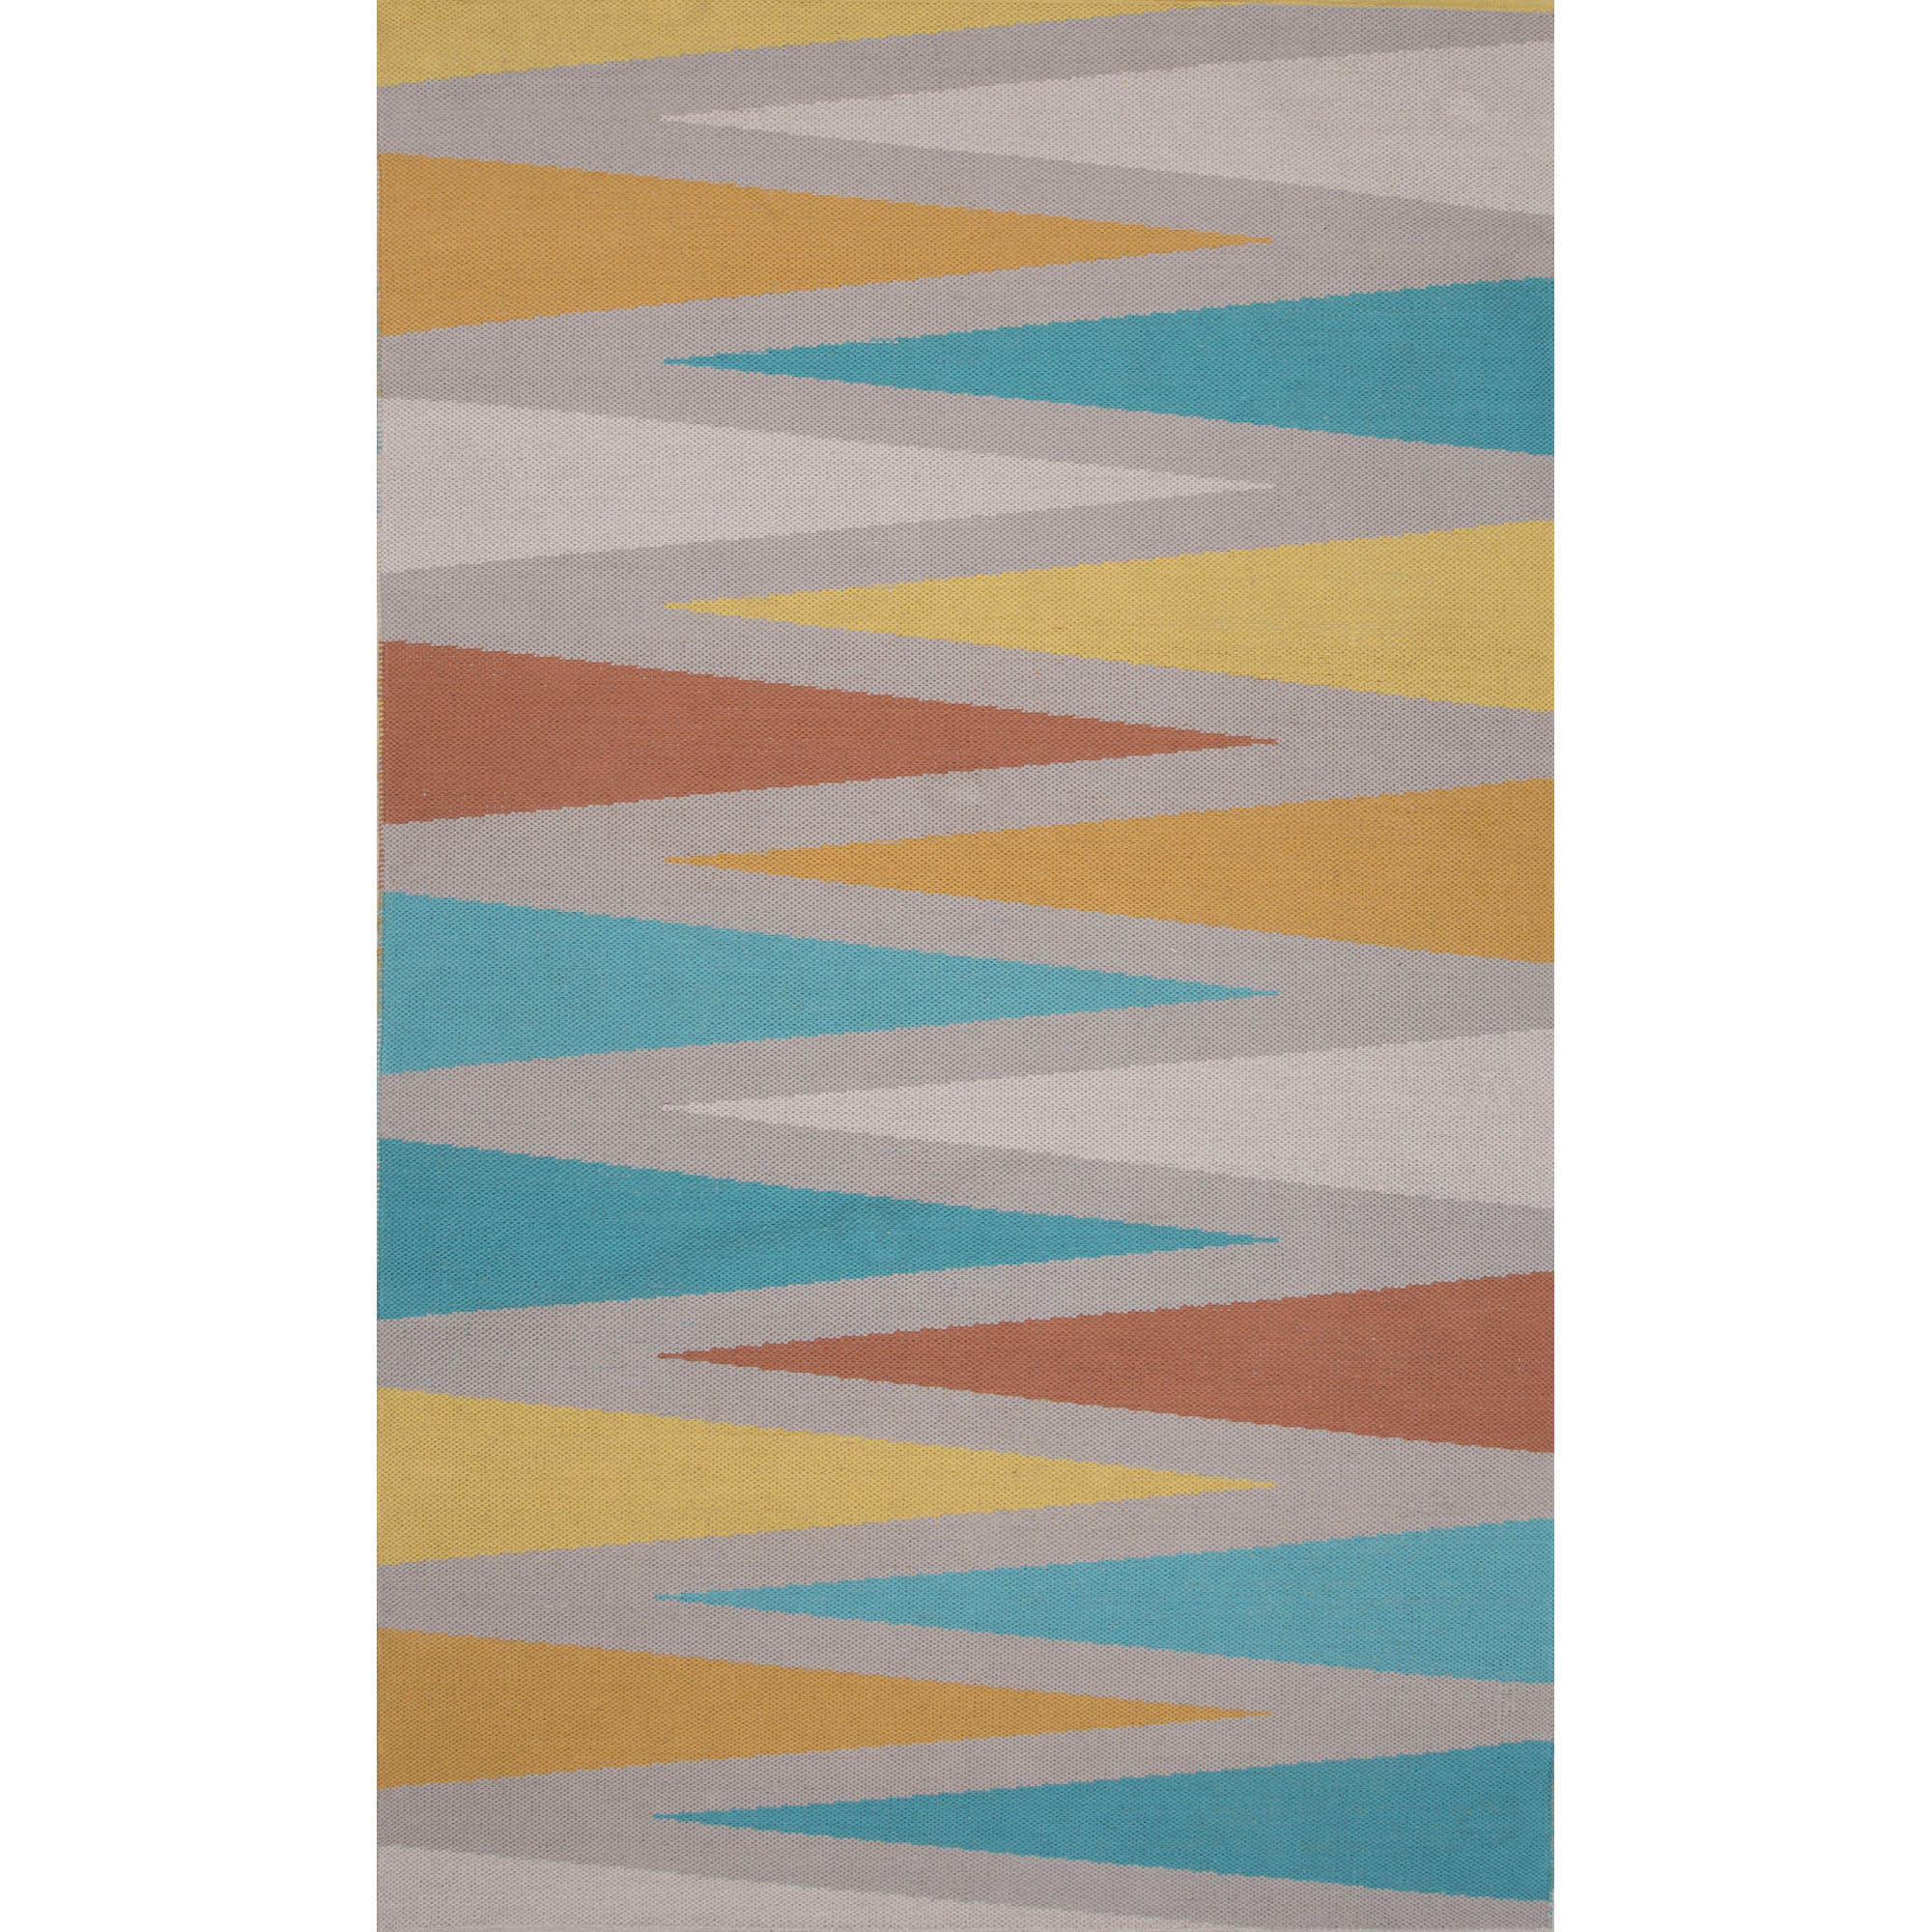 JAIPUR Rugs Traditions Modern Cotton Flat Weave 8 x 11 Rug - Item Number: RUG122223